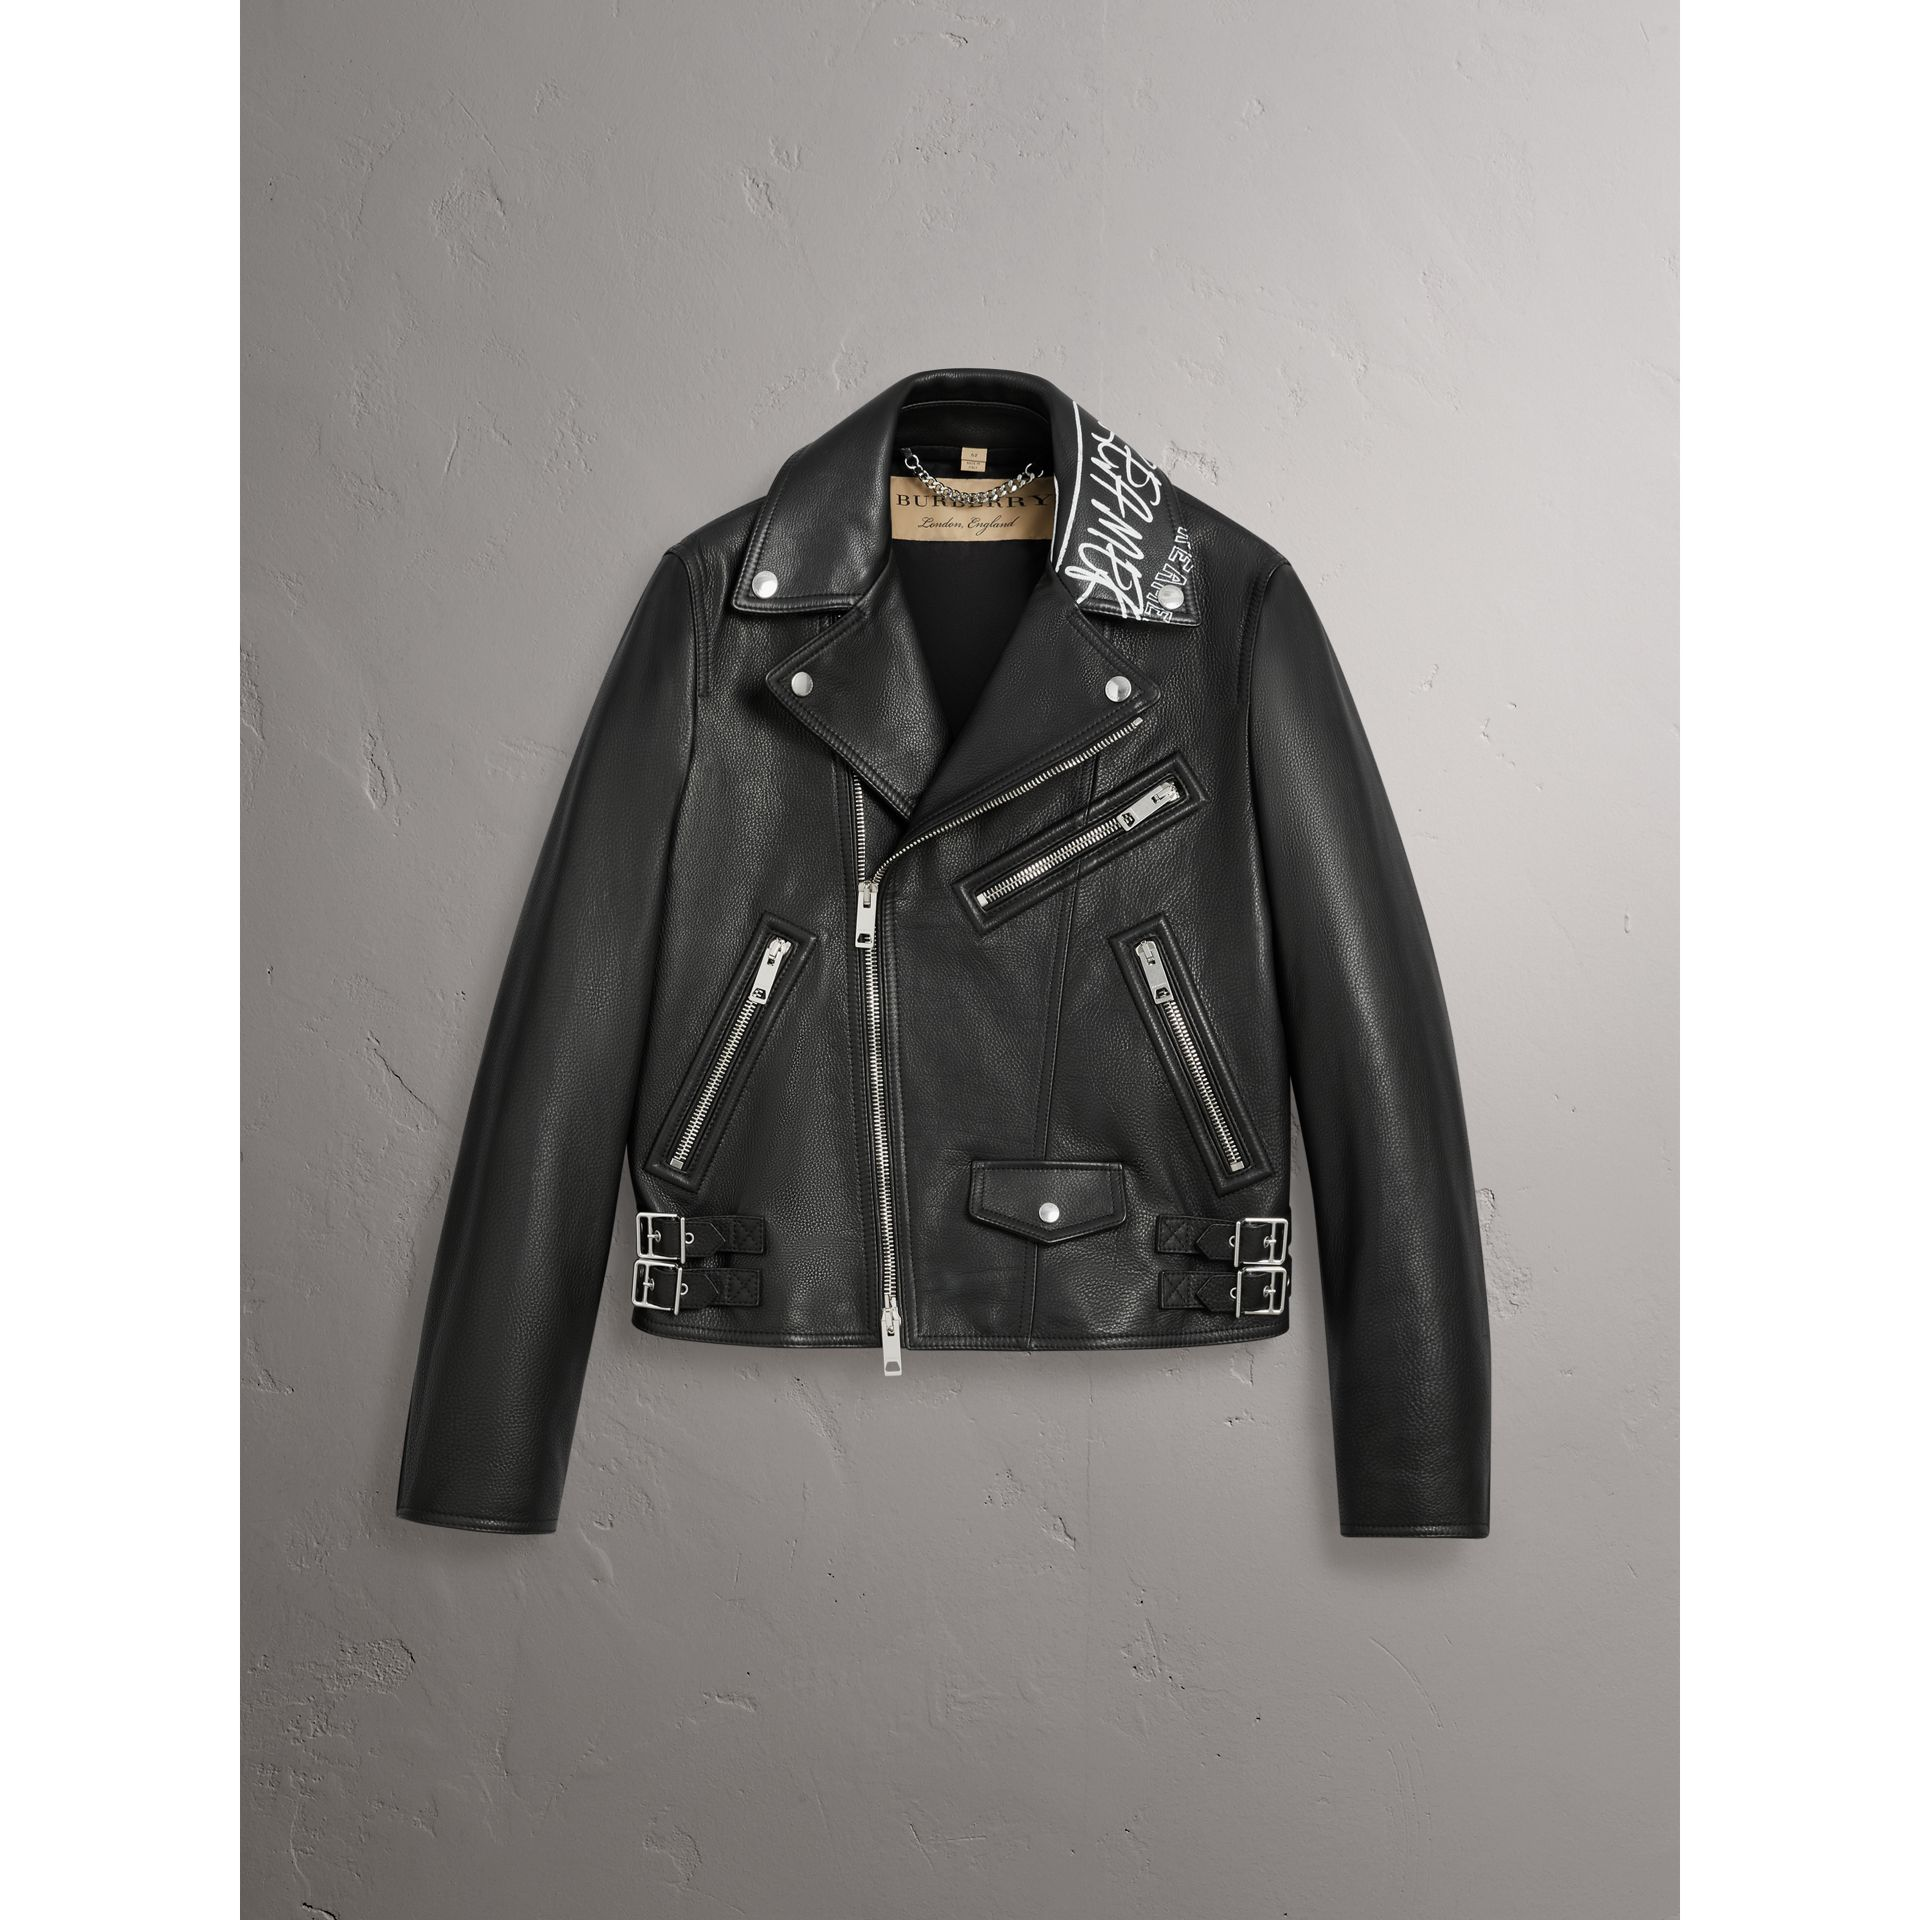 Burberry x Kris Wu Leather Biker Jacket in Black - Men | Burberry - gallery image 3